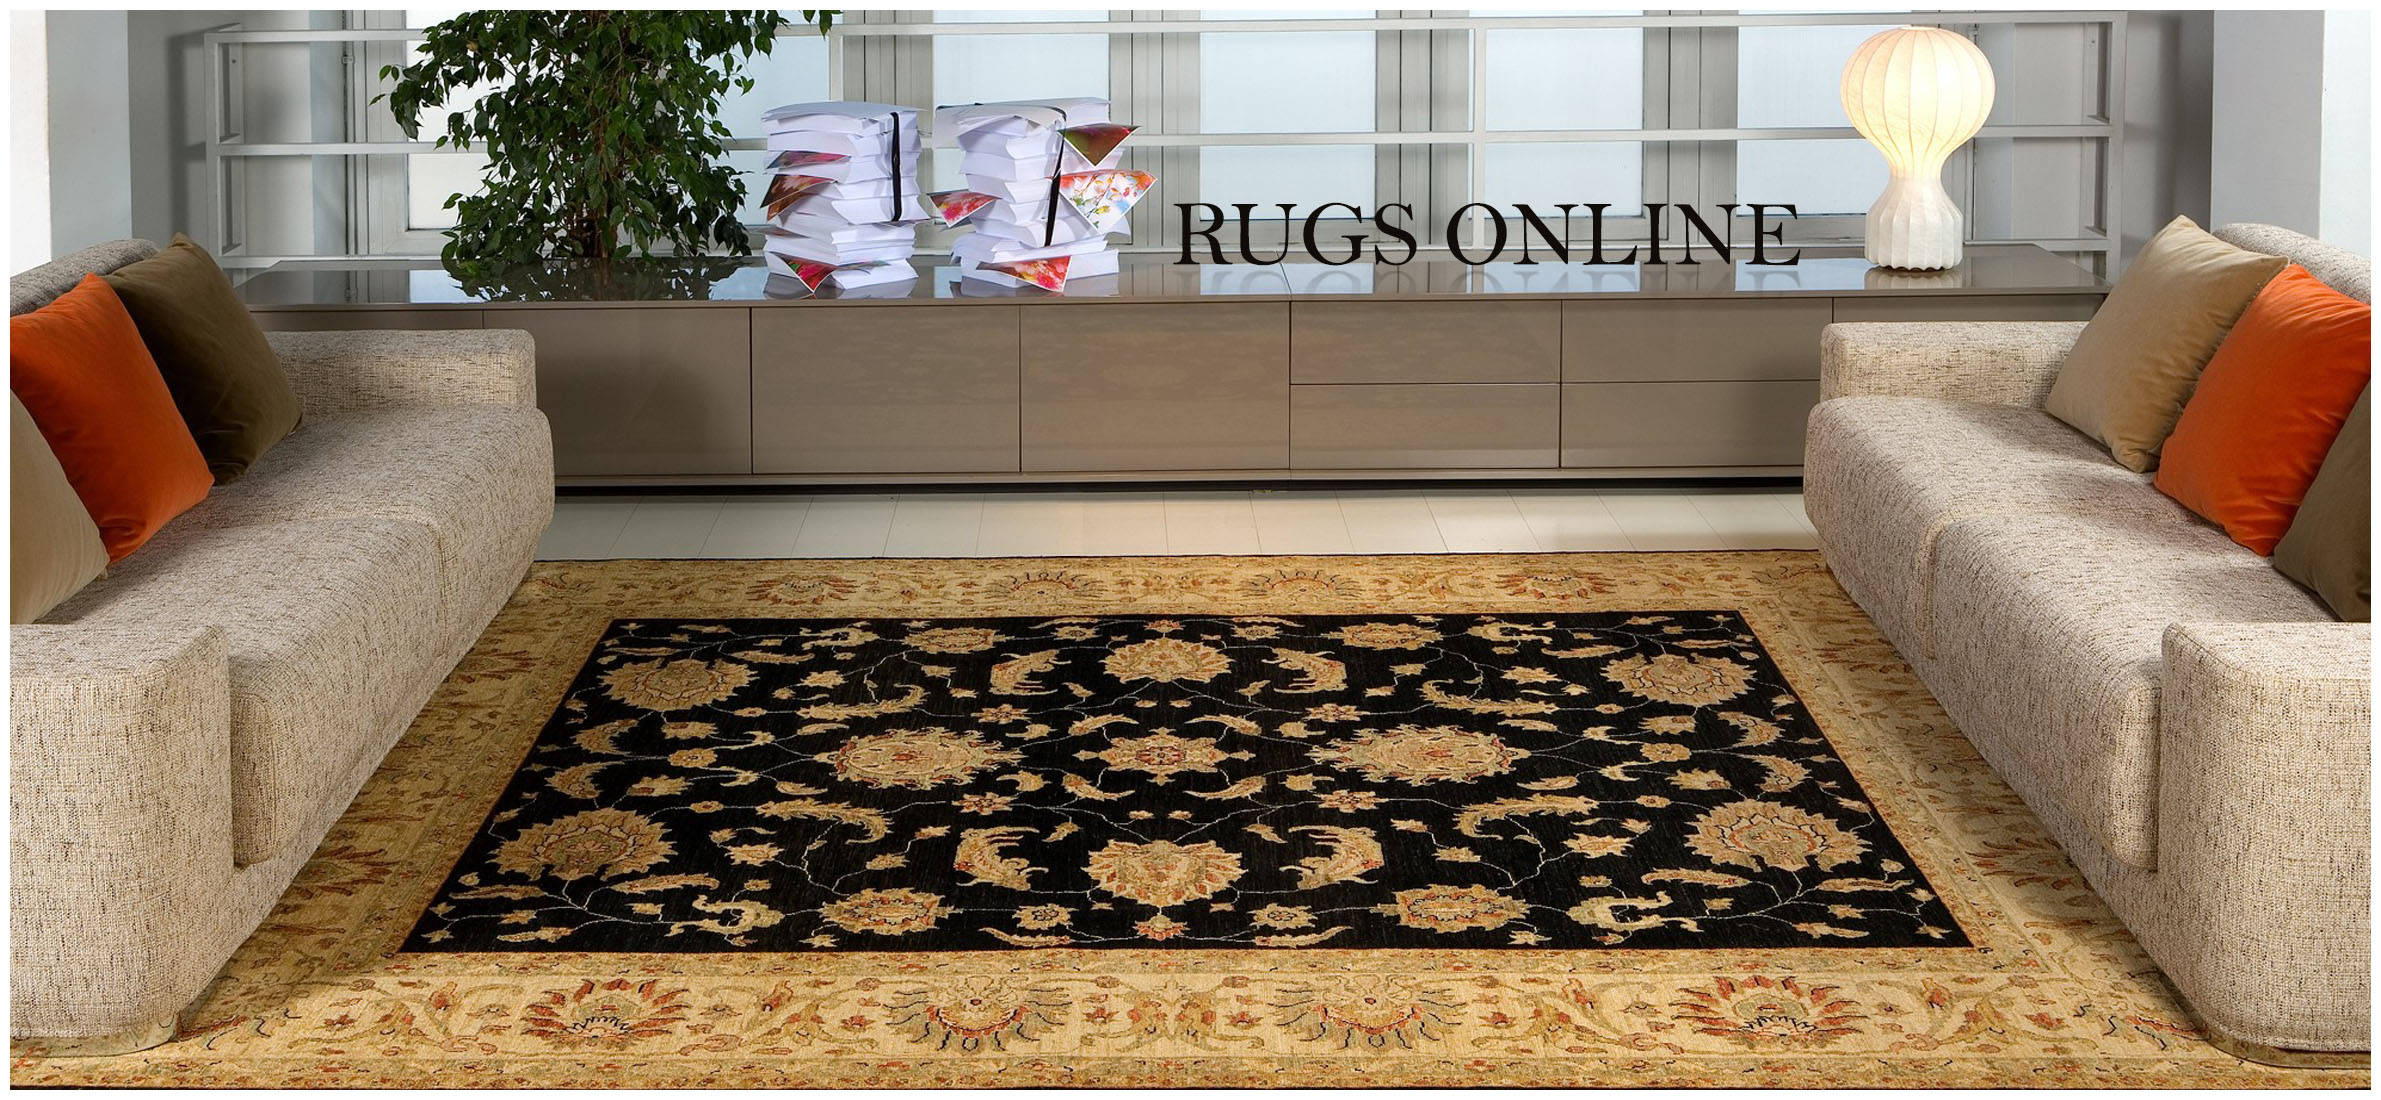 When You Re Paying Extra Attention To The Design Of Your Living Room It Pays Make A Choice From Unique Rugs Online Australia Can Find Ozrugs